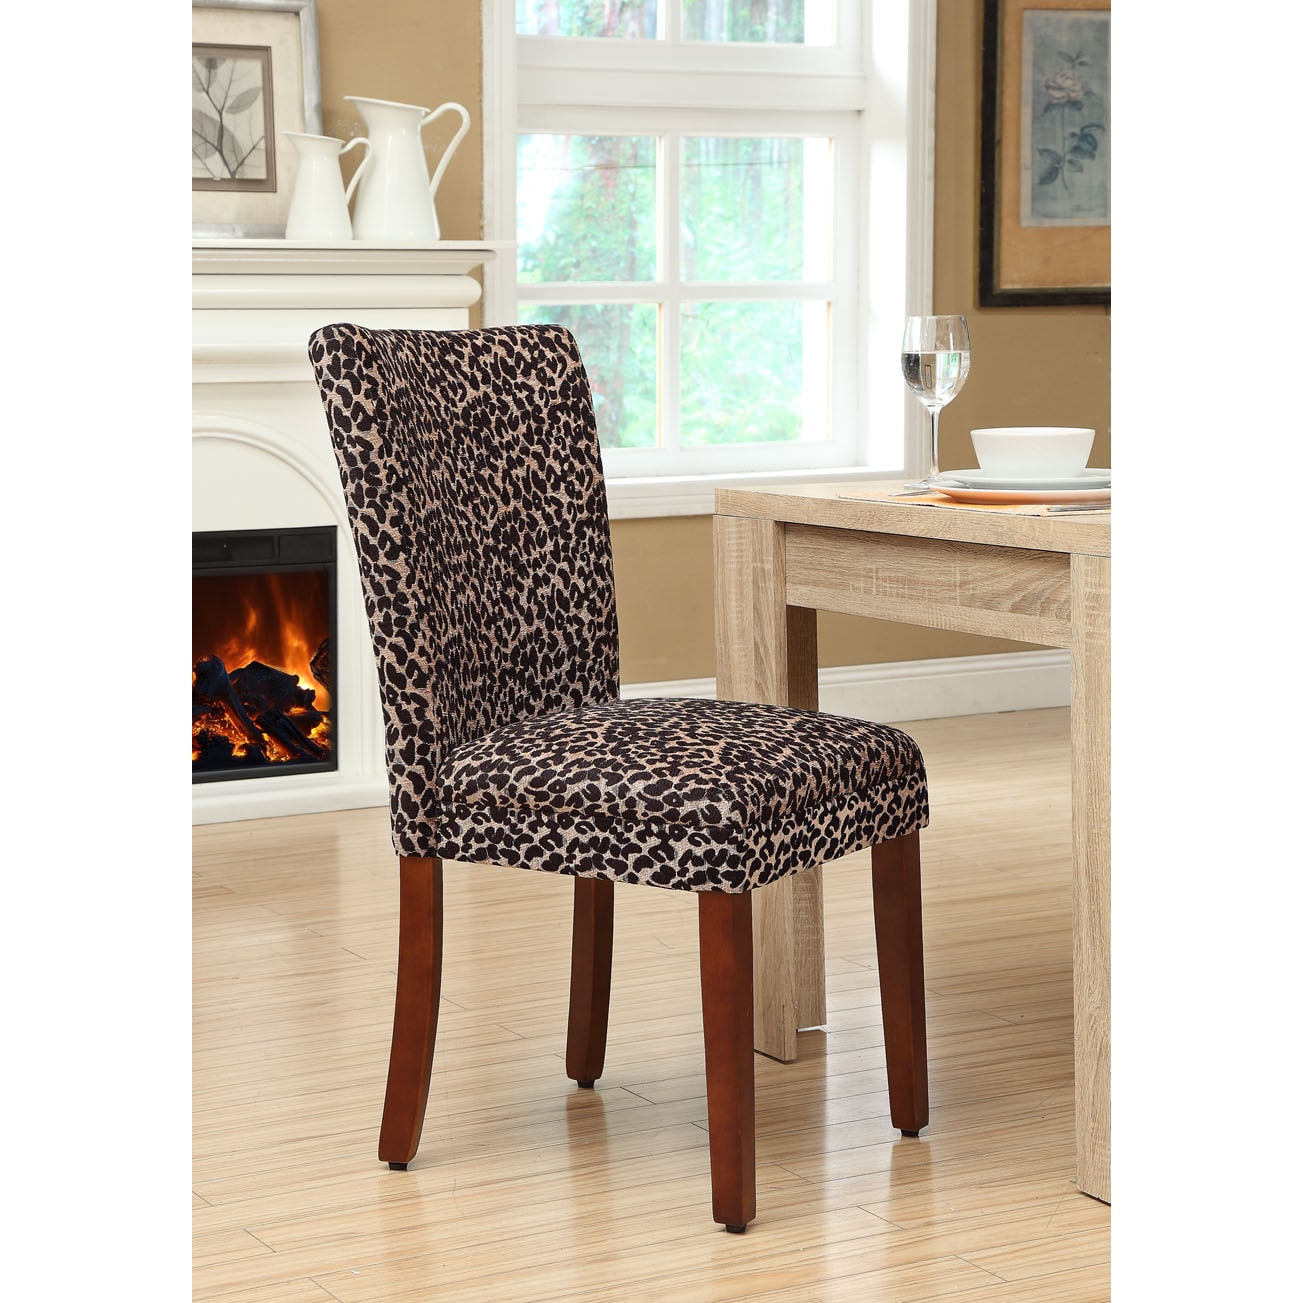 Homepop Leopard Parsons Chairs Set Of 2 N A